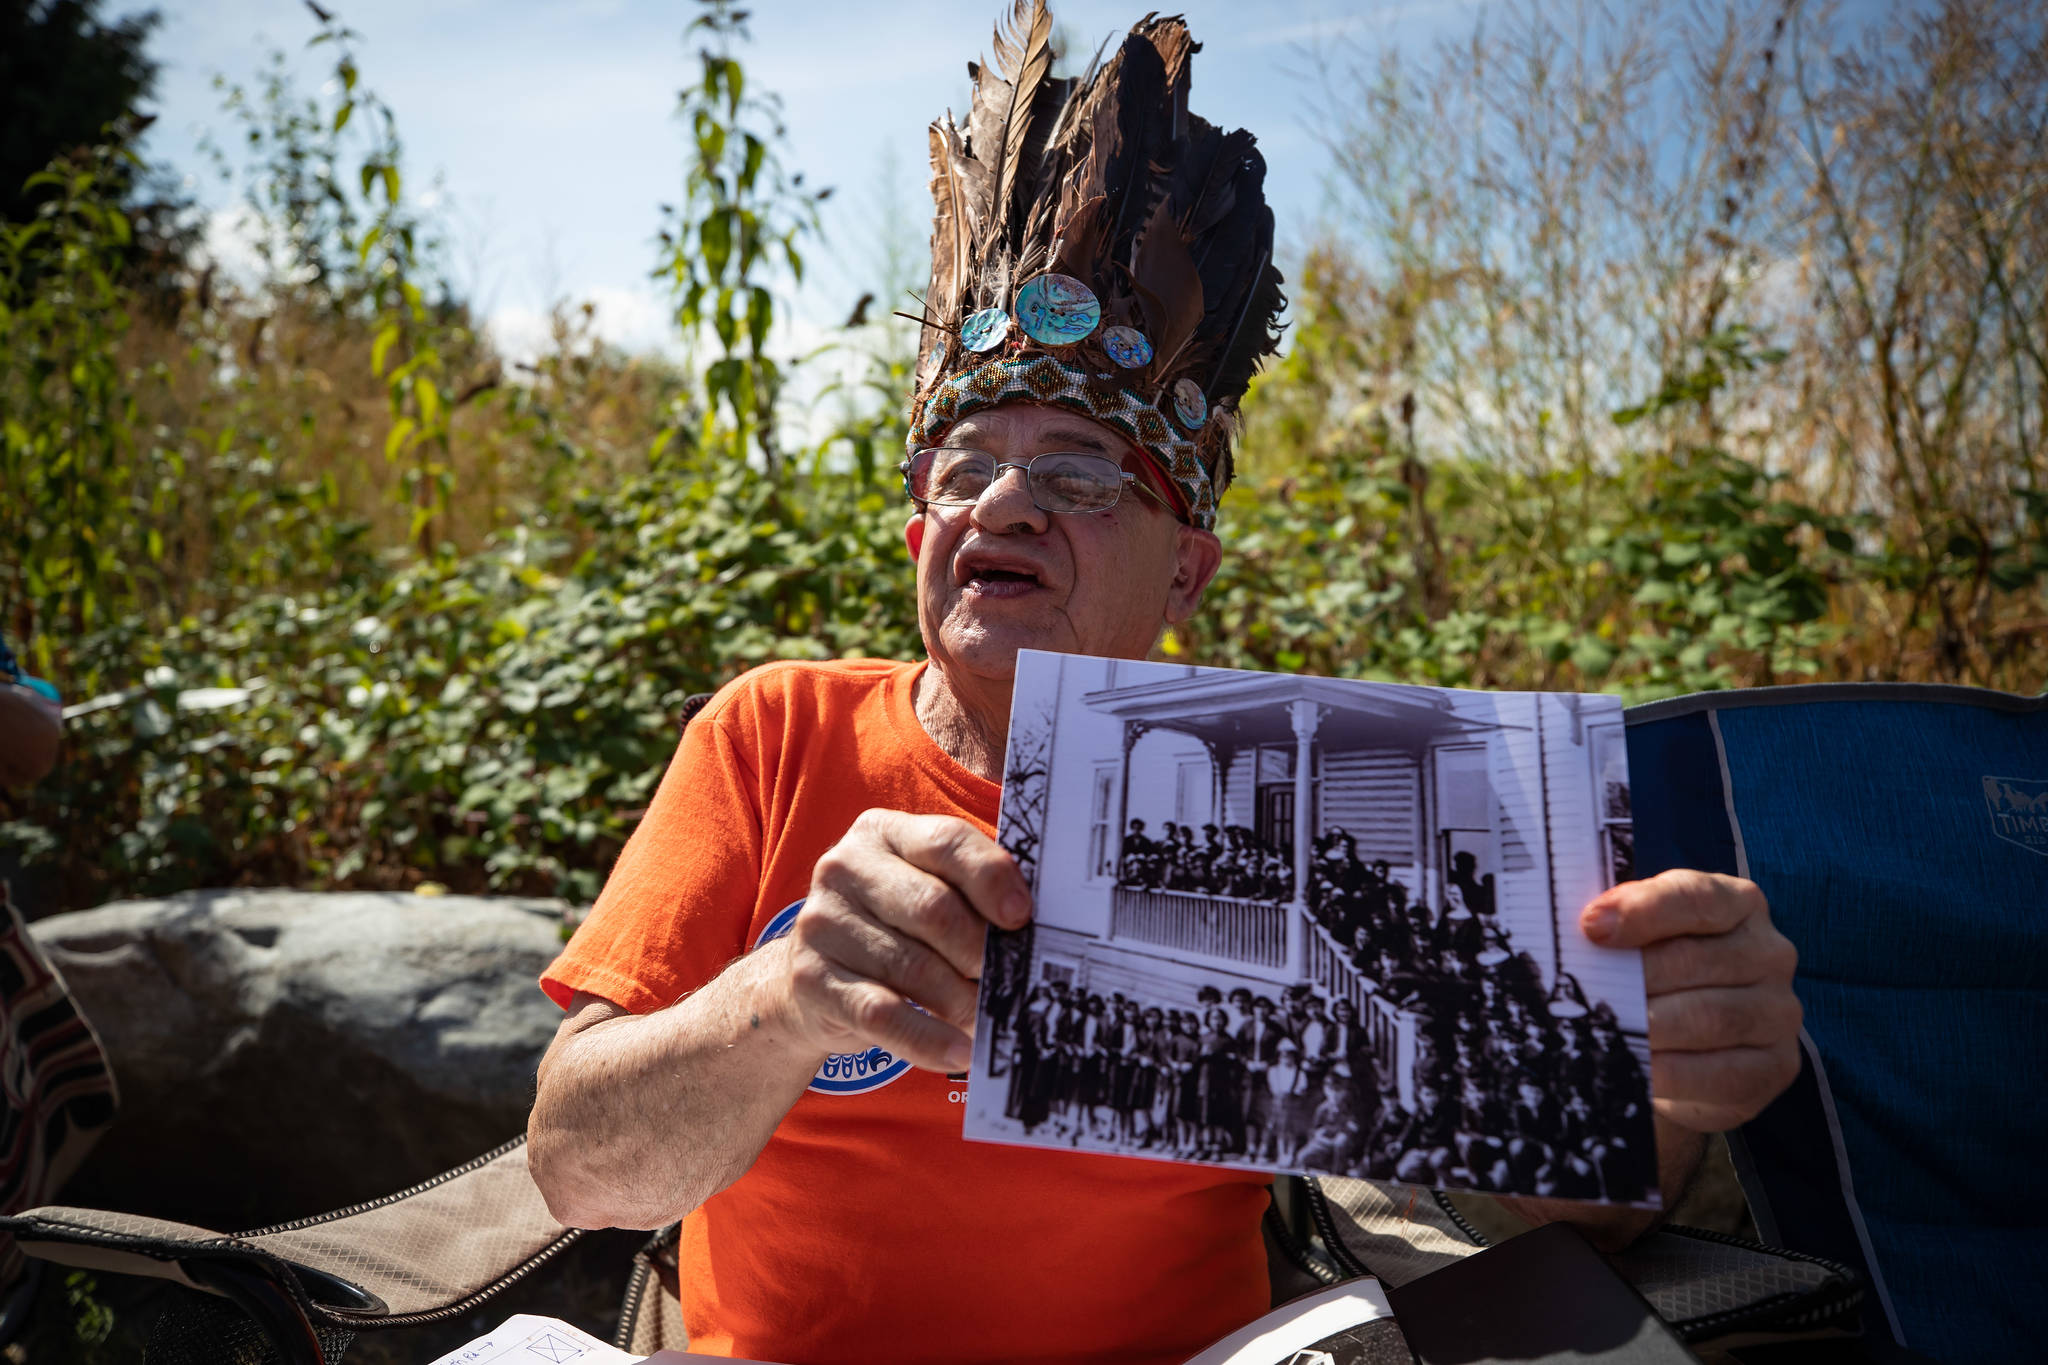 Willie Nahanee, 79, of the Squamish Nation, who attended the former St. Paul Indian Residential School for 10 years and the Kamloops Indian Residential School for one year, holds one of his class photographs from St. Paul, in North Vancouver, on Tuesday, August 10, 2021. The Squamish Nation, together with the support of the Tsleil-Waututh and Musqueam First Nations and the Catholic Archdiocese will be launching an investigation into the former residential school. (THE CANADIAN PRESS/Darryl Dyck)